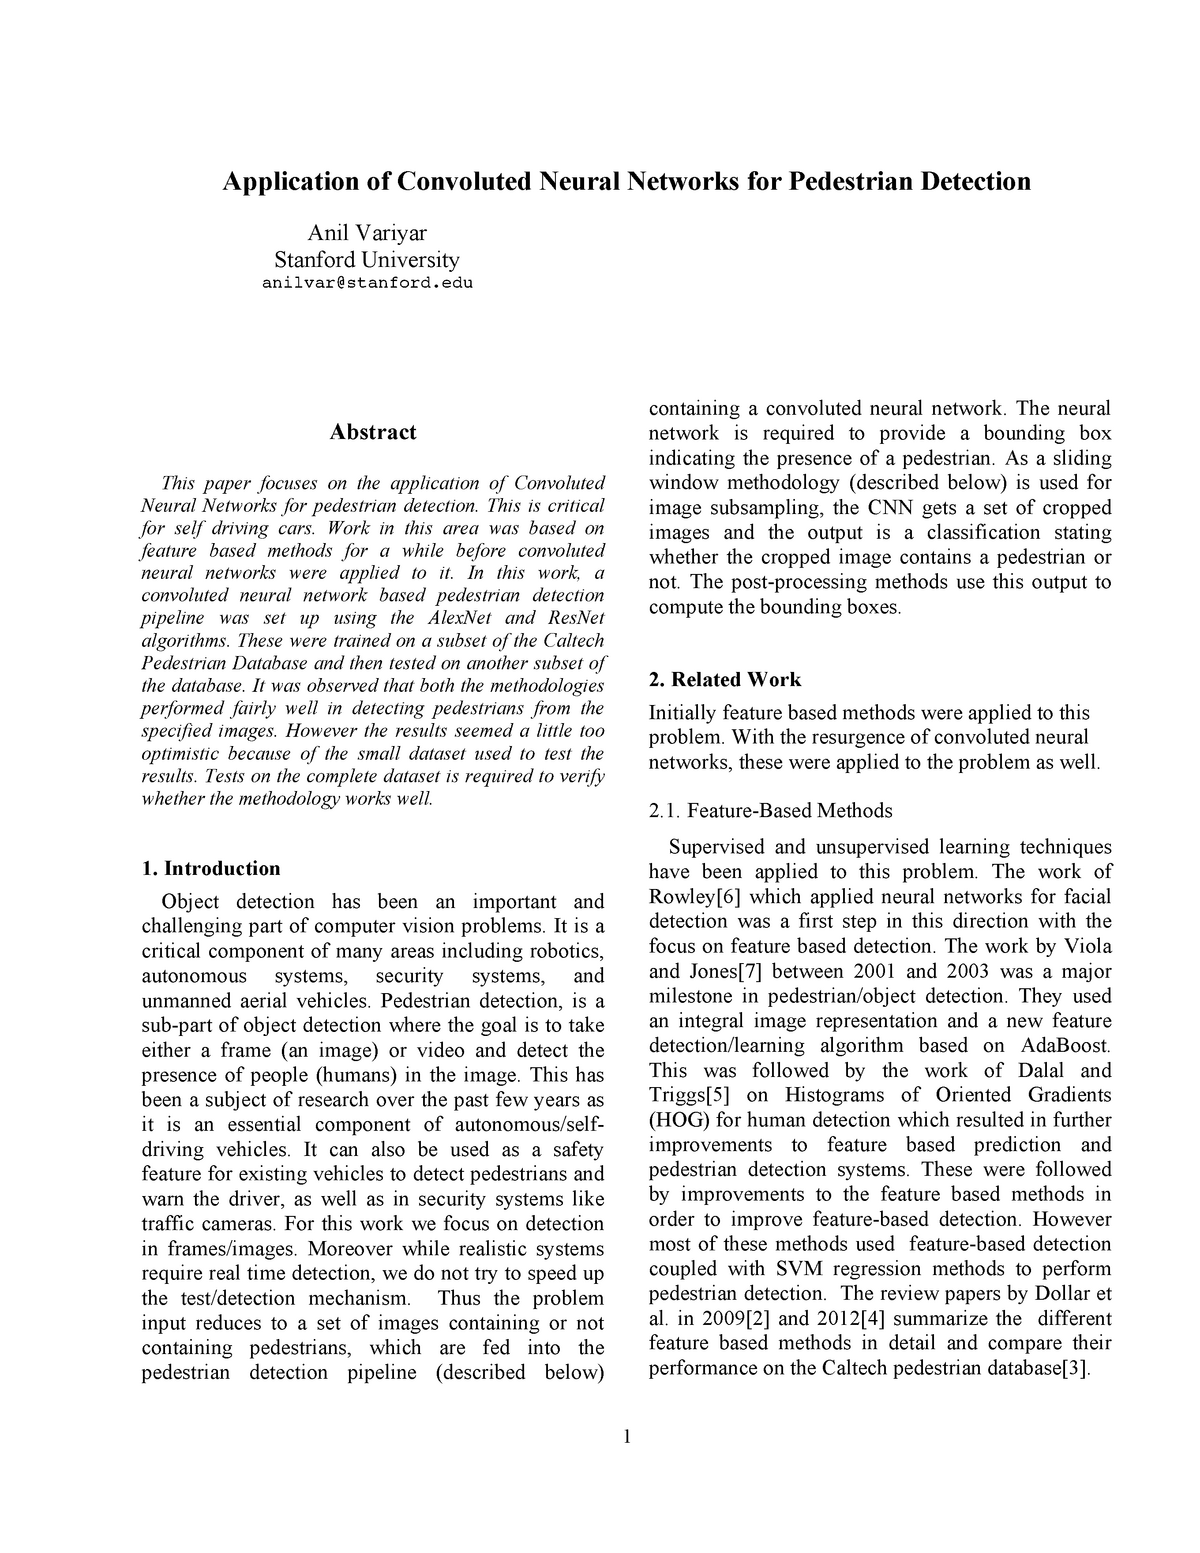 Application of convoluted neural networks for pedestrian detection